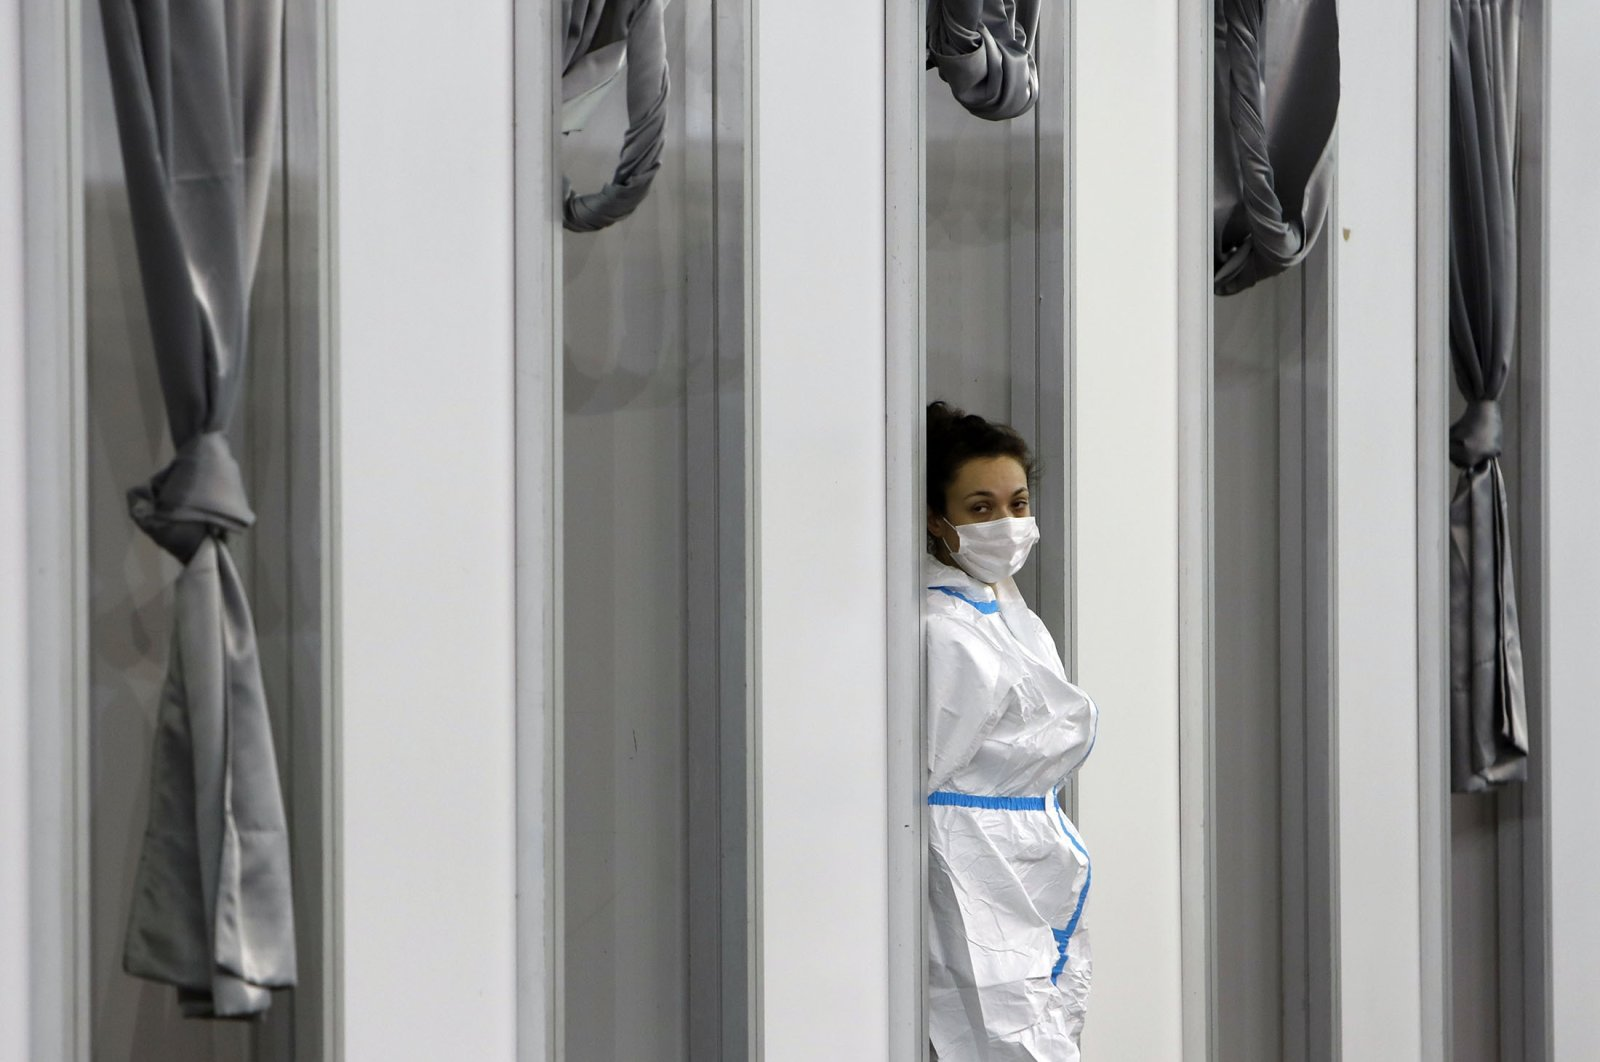 A medical worker wearing protective gear waits for people to receive the COVID-19 vaccine, at Belgrade Fair makeshift vaccination center in Belgrade, Serbia, Feb. 9, 2021. (AP Photo)